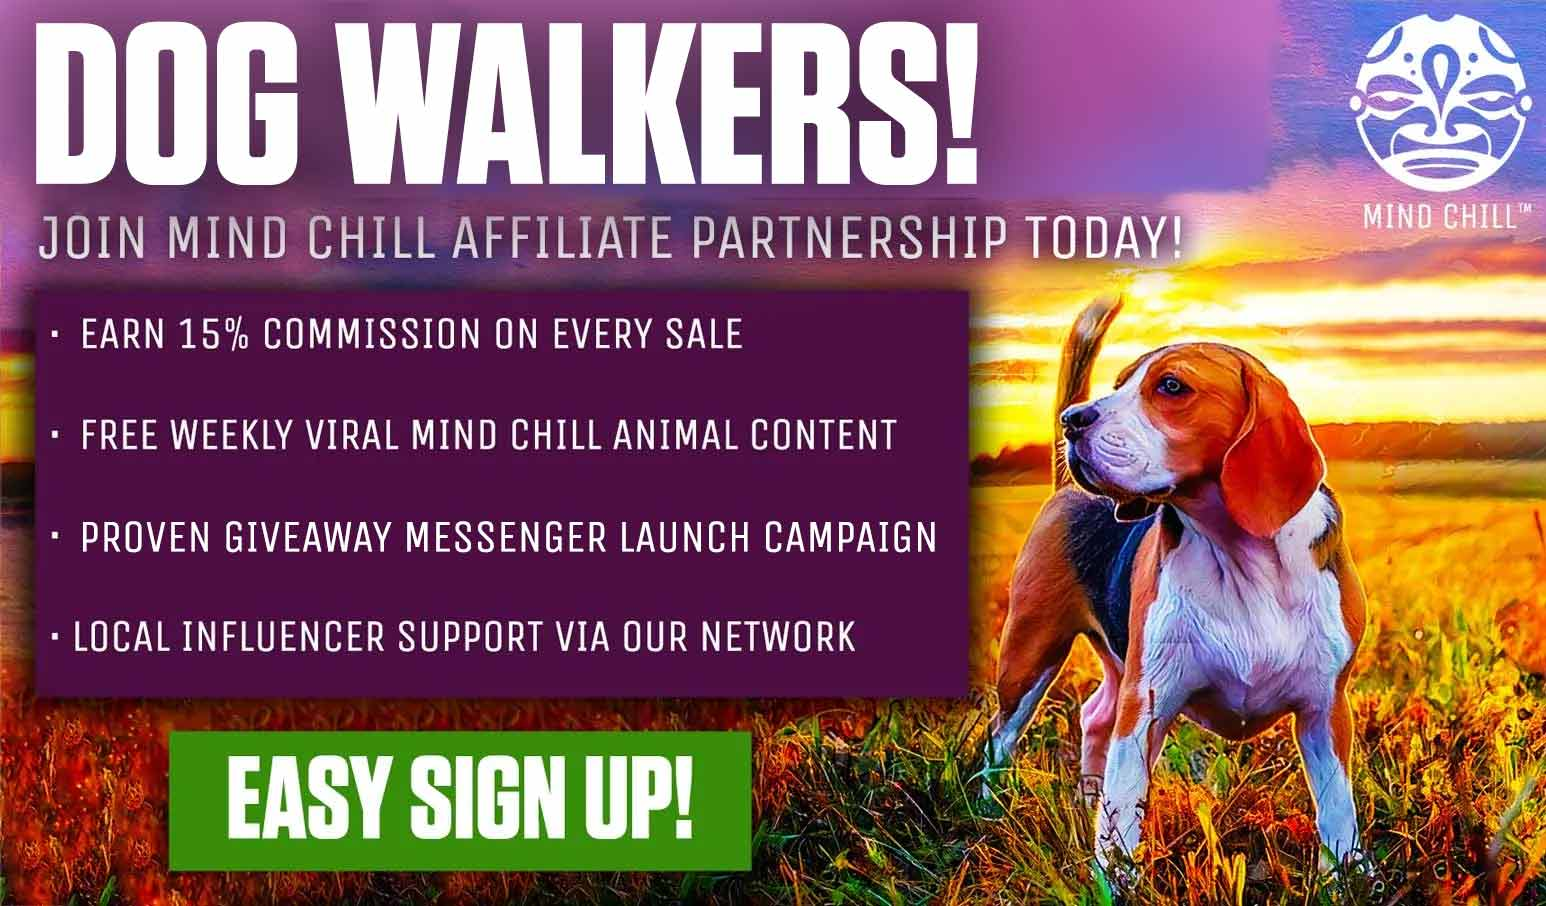 Dog walkers mind chill affiliate partnership registration